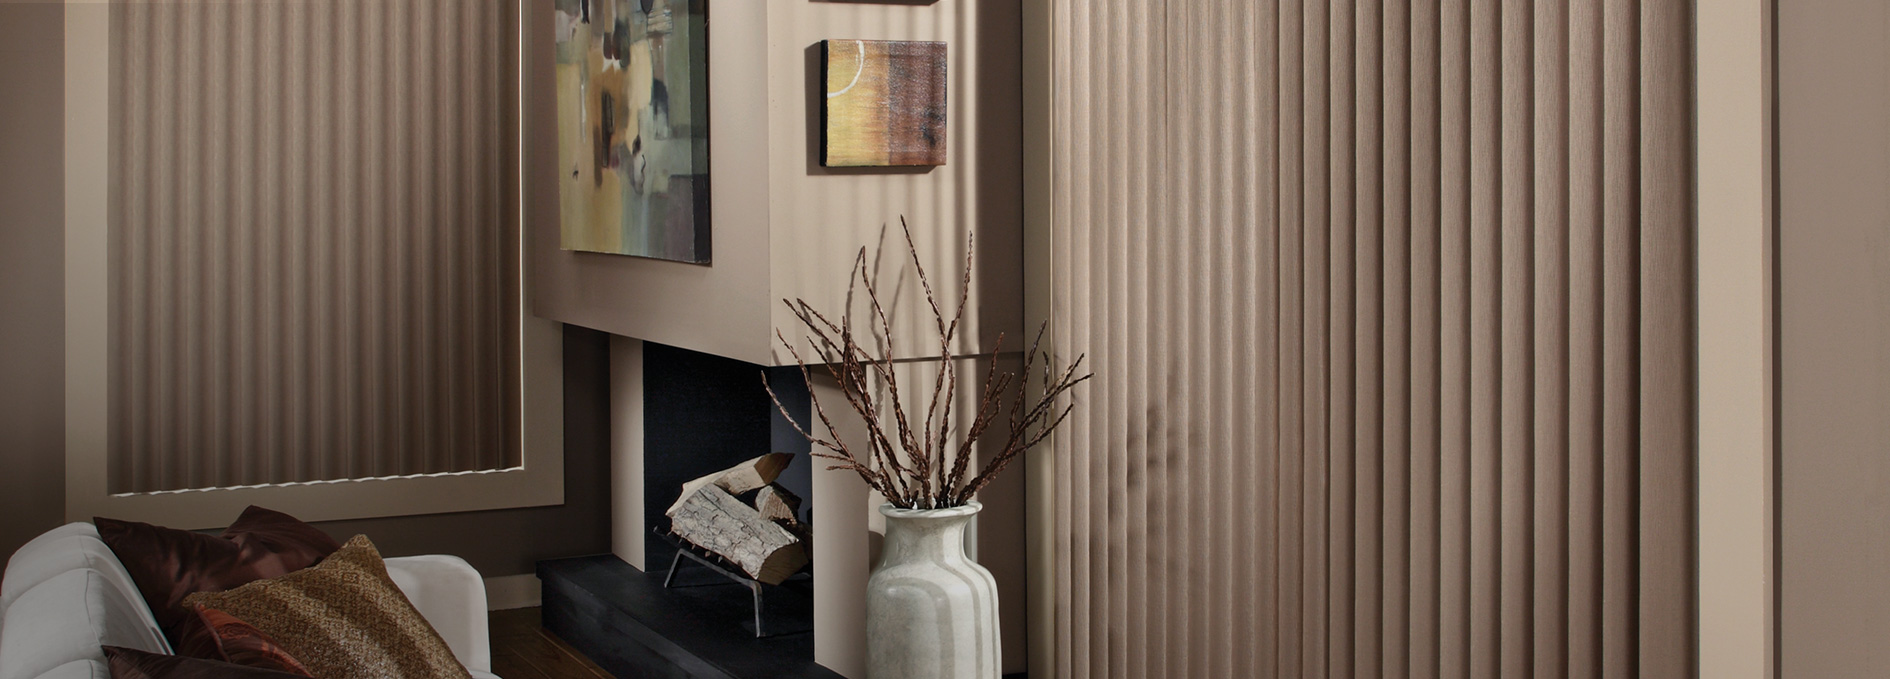 Vertical Blinds Blinds Today S Window Fashions